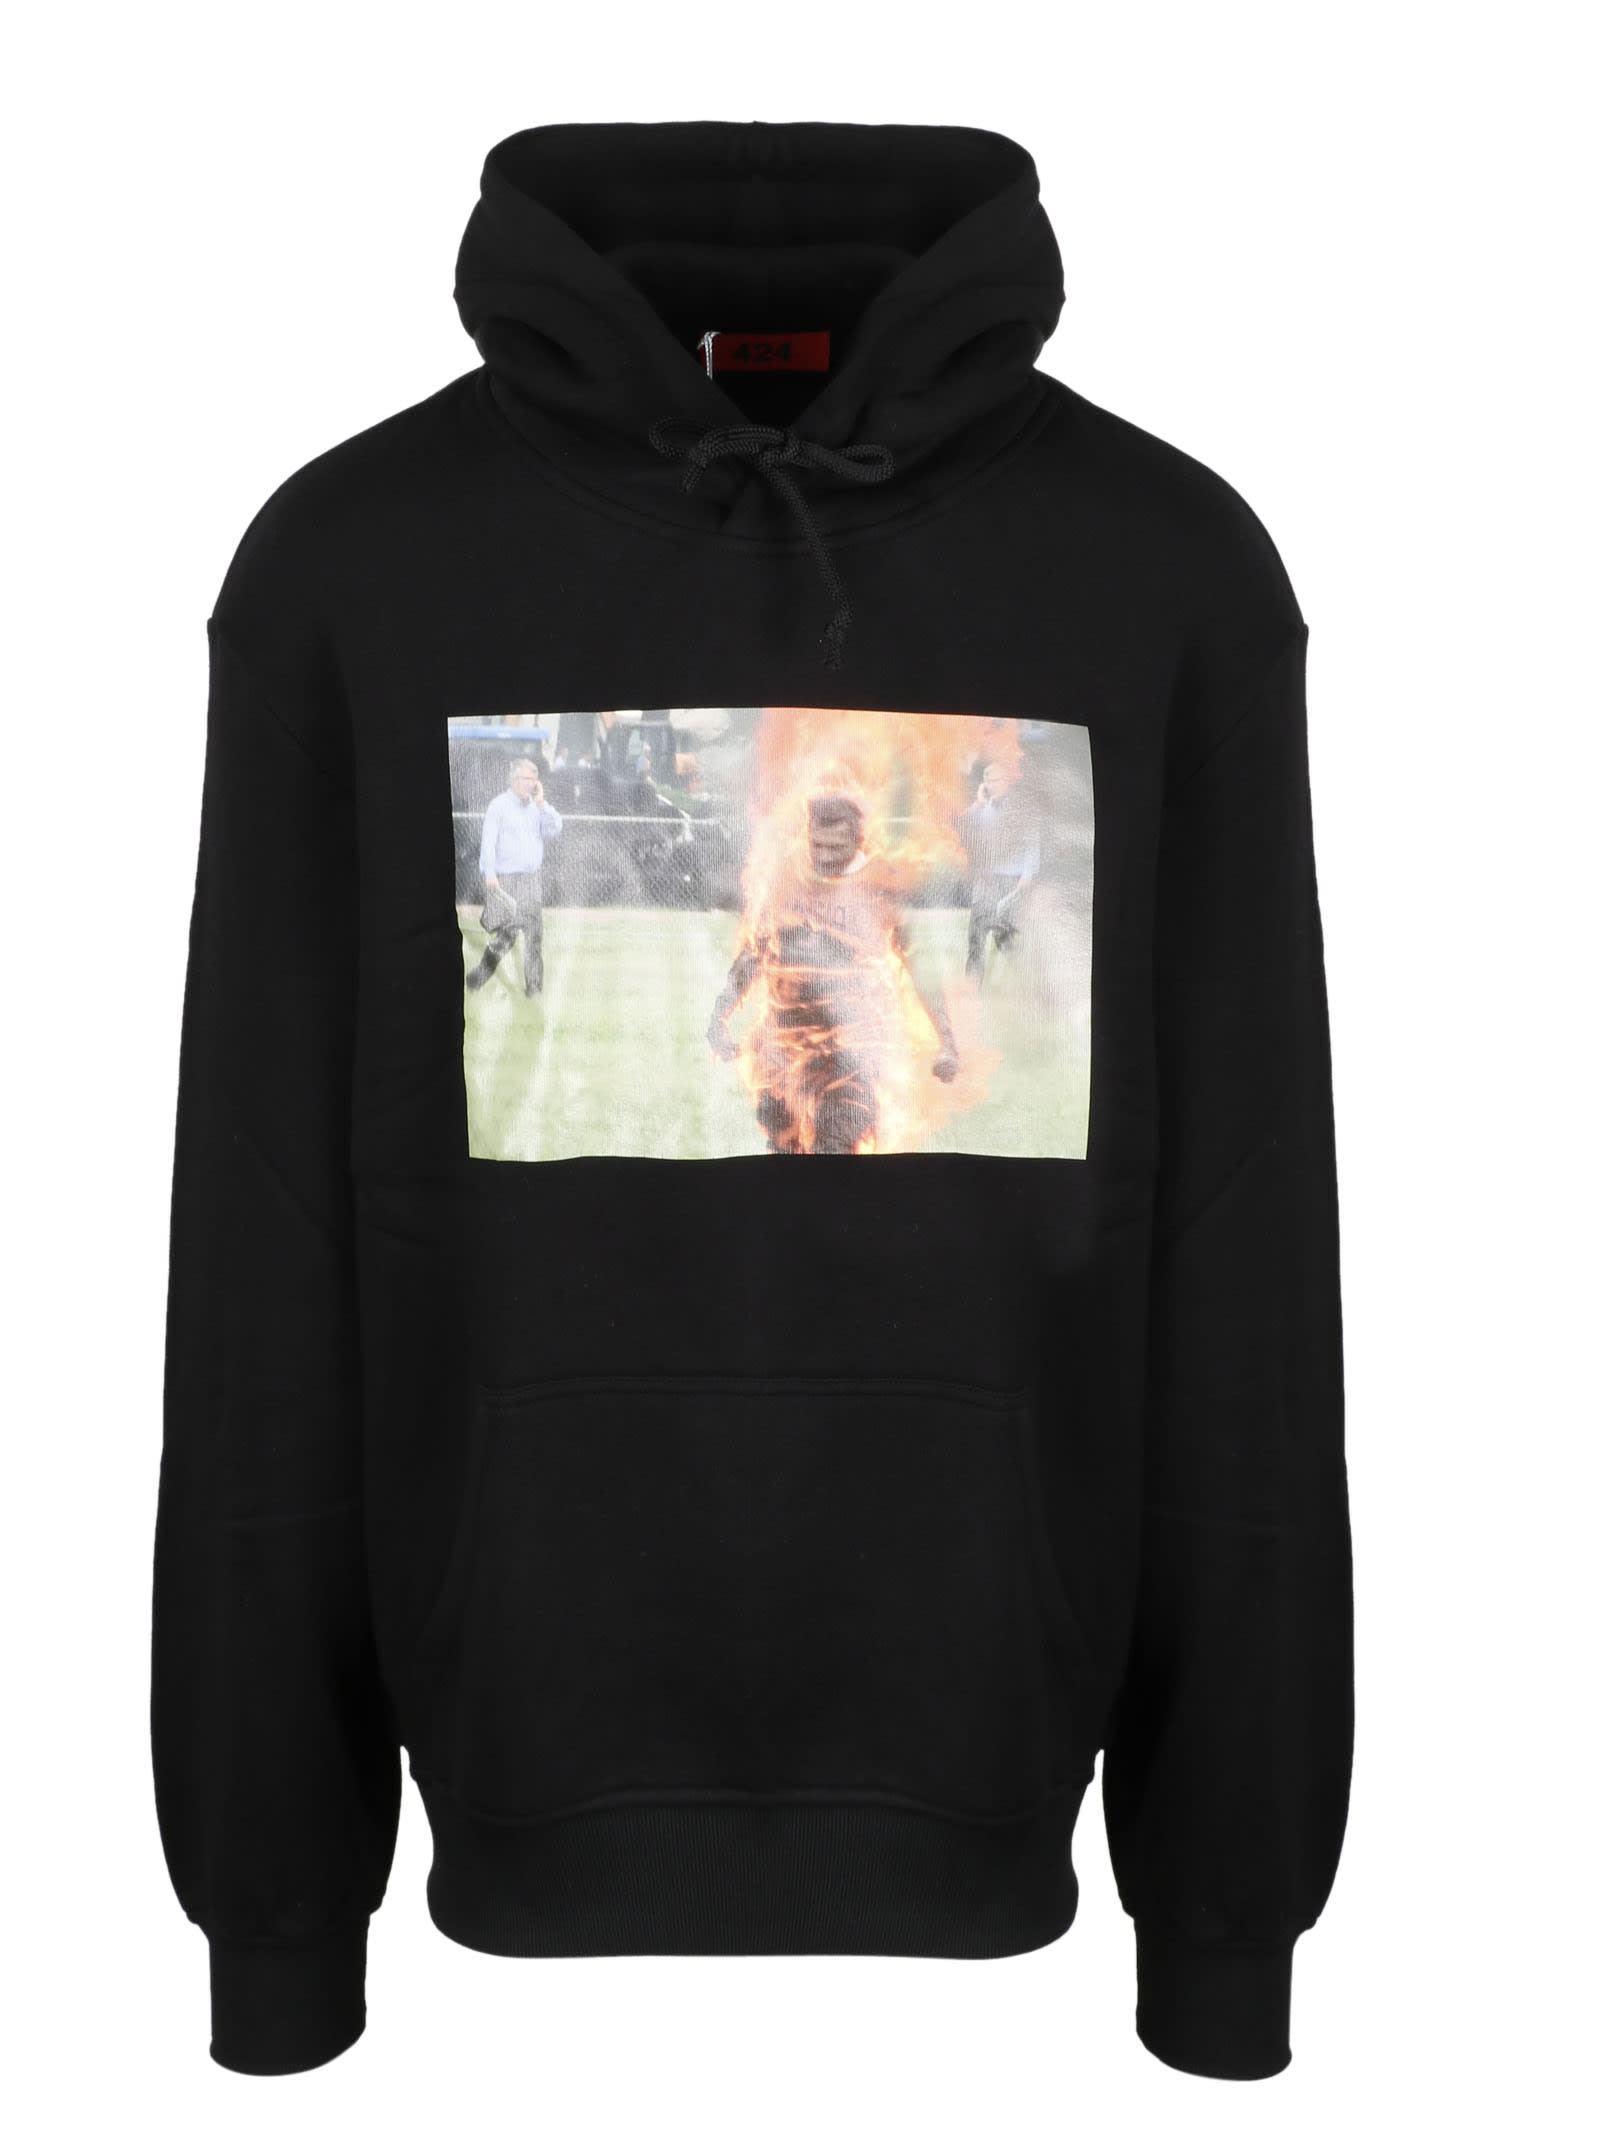 FourTwoFour on Fairfax Printed Hoodie